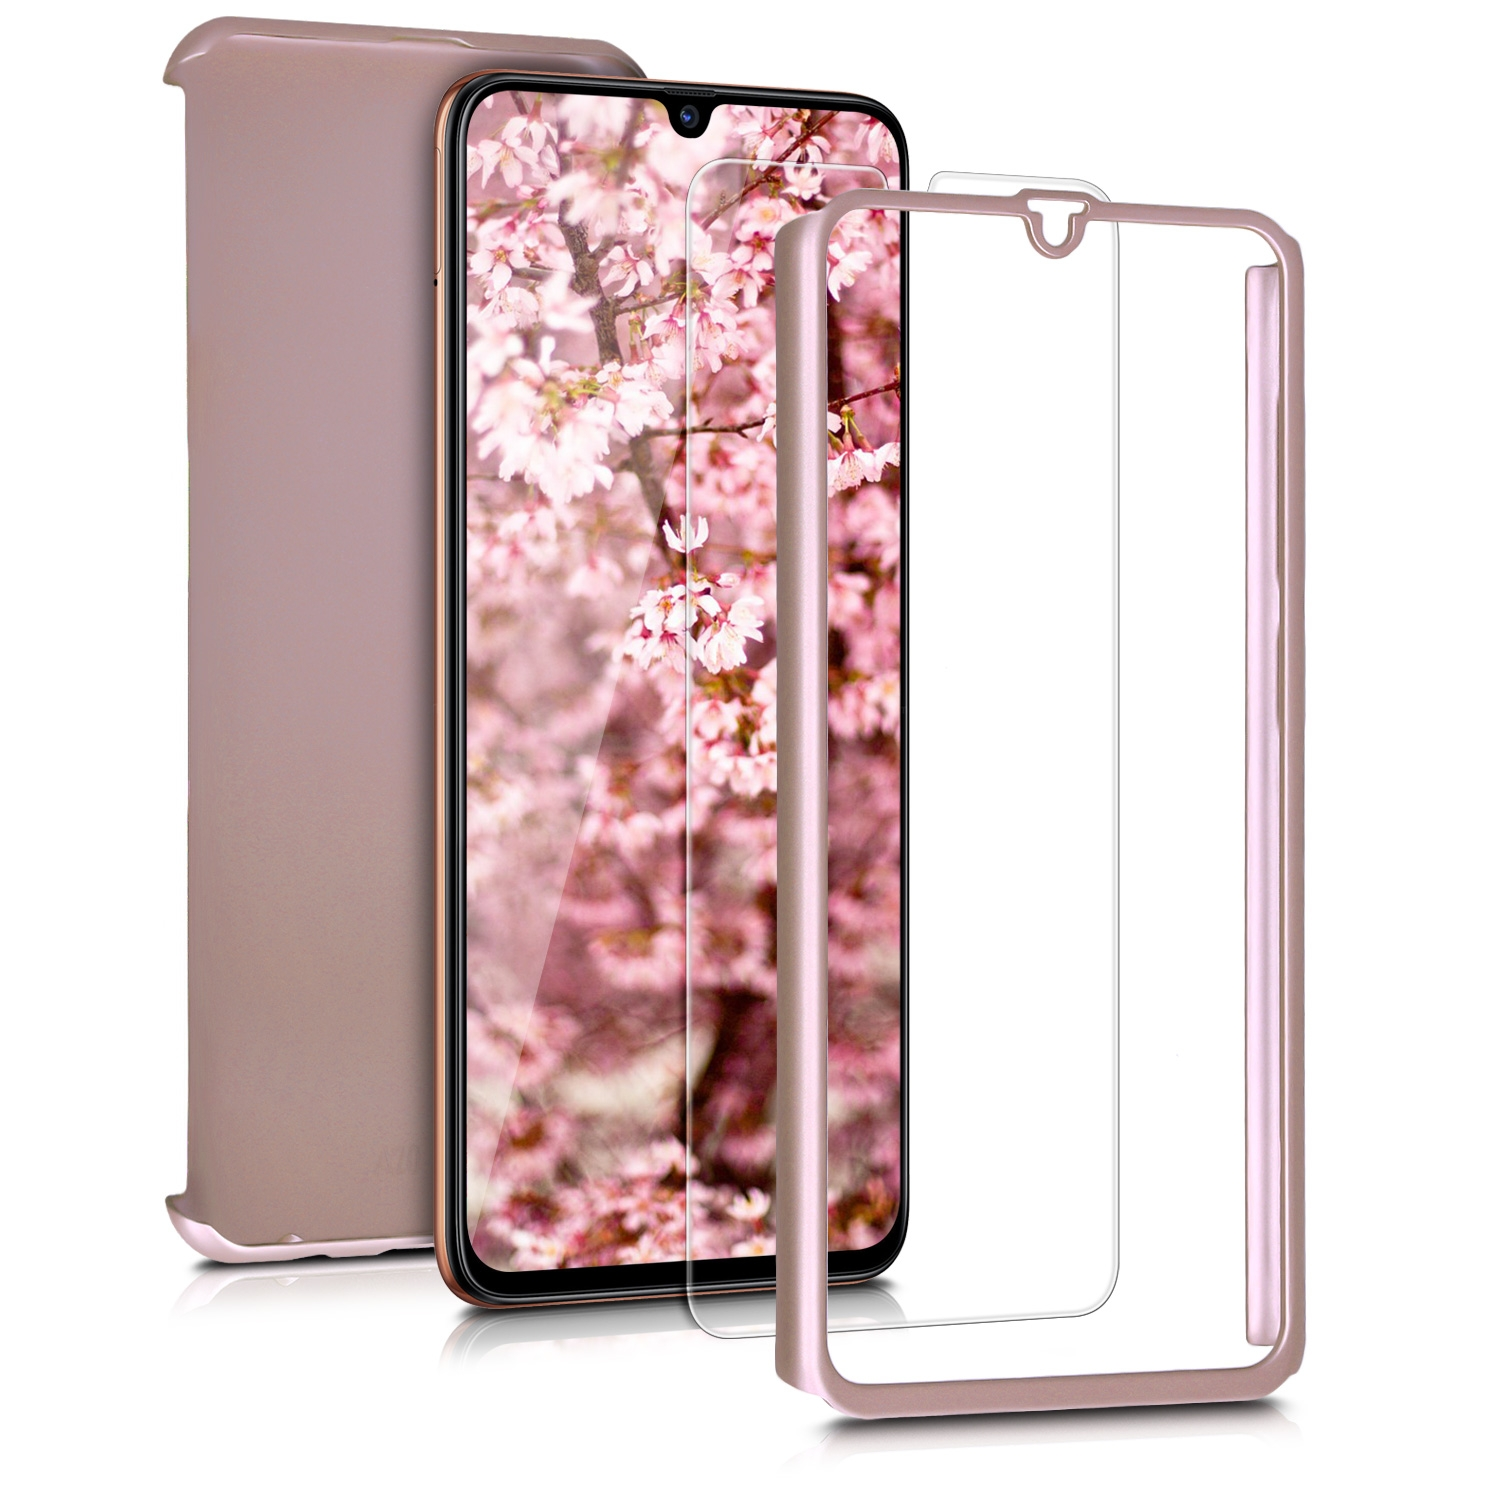 KW Θήκη Full Body Samsung Galaxy A70 & Tempered Glass - Metallic Rose Gold (48429.31)